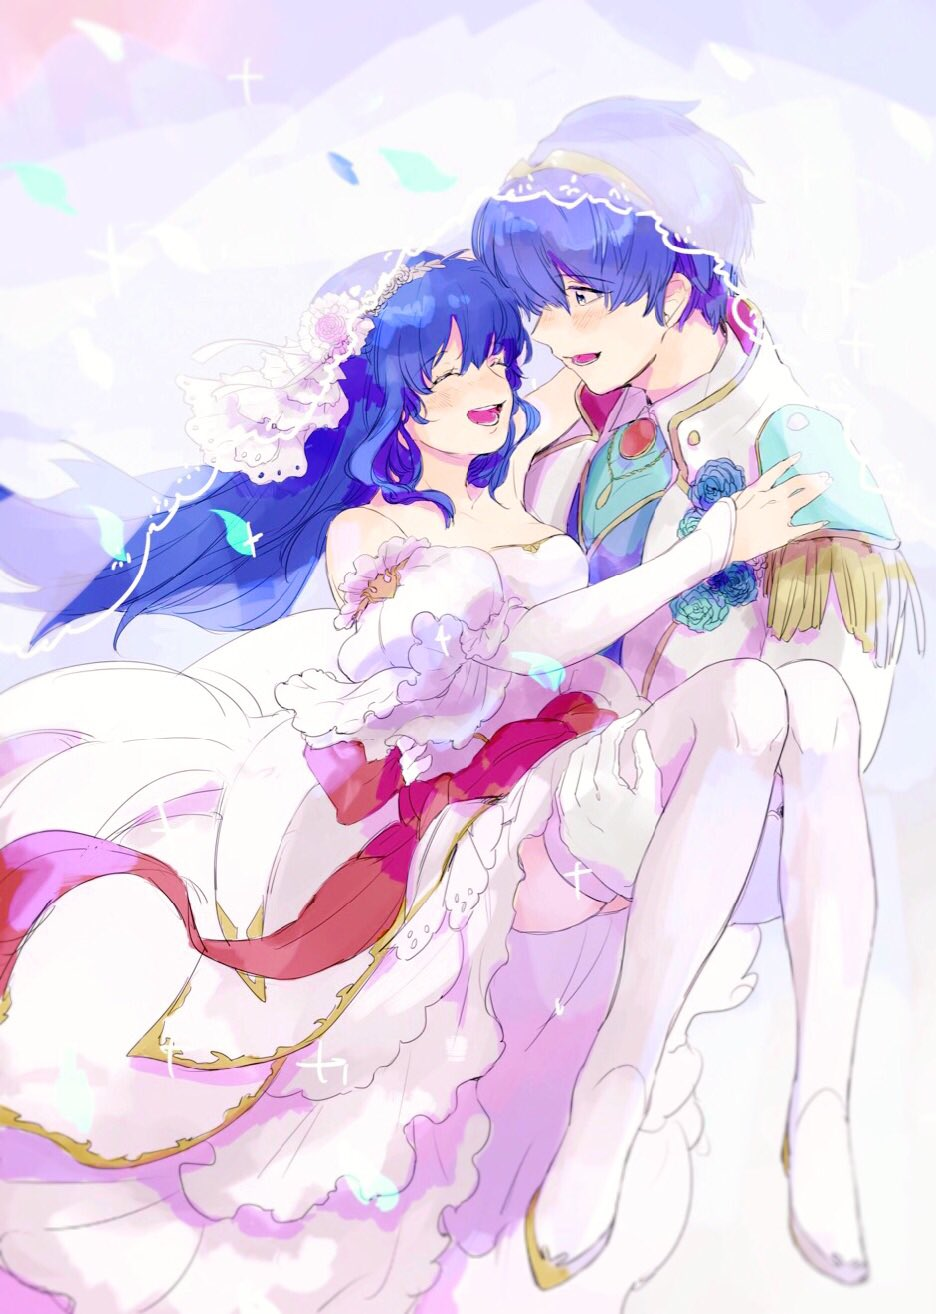 1boy 1girl artist_request bare_shoulders blue_eyes blue_hair blush bouquet bridal_veil bride cape carrying dress elbow_gloves fire_emblem fire_emblem:_monshou_no_nazo fire_emblem_heroes flower formal gloves hair_flower hair_ornament highres husband_and_wife jewelry long_hair marth necklace pegasus_knight princess_carry rose sheeda smile strapless strapless_dress suit thigh-highs tiara tuxedo veil wedding wedding_dress white_dress white_gloves